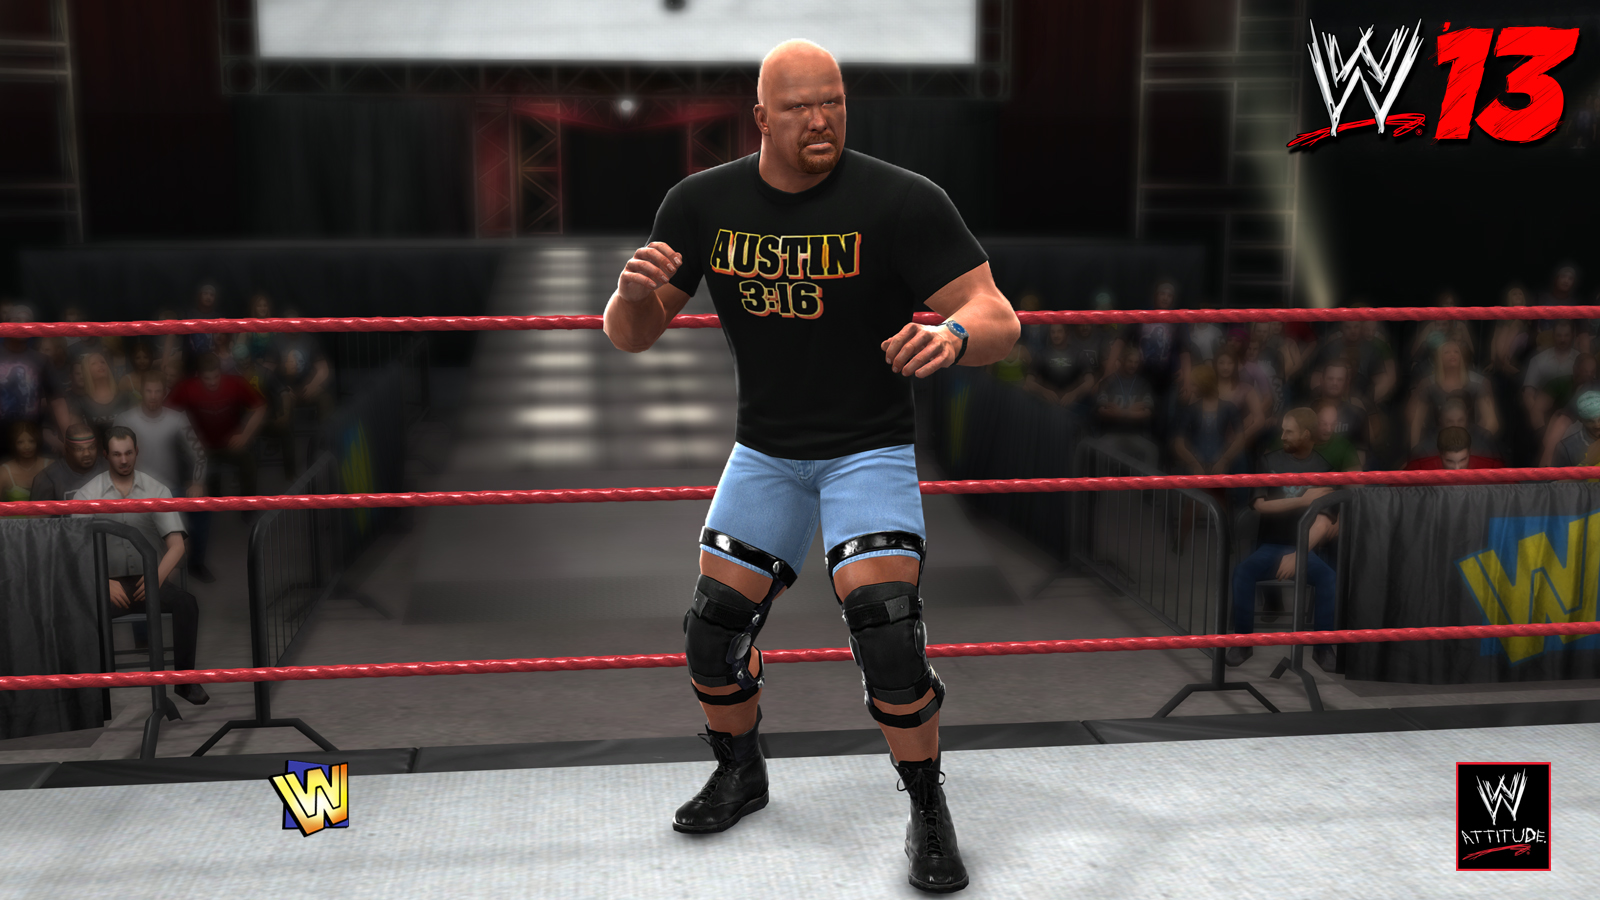 WWE 13 - CE Features Steve Austin 07